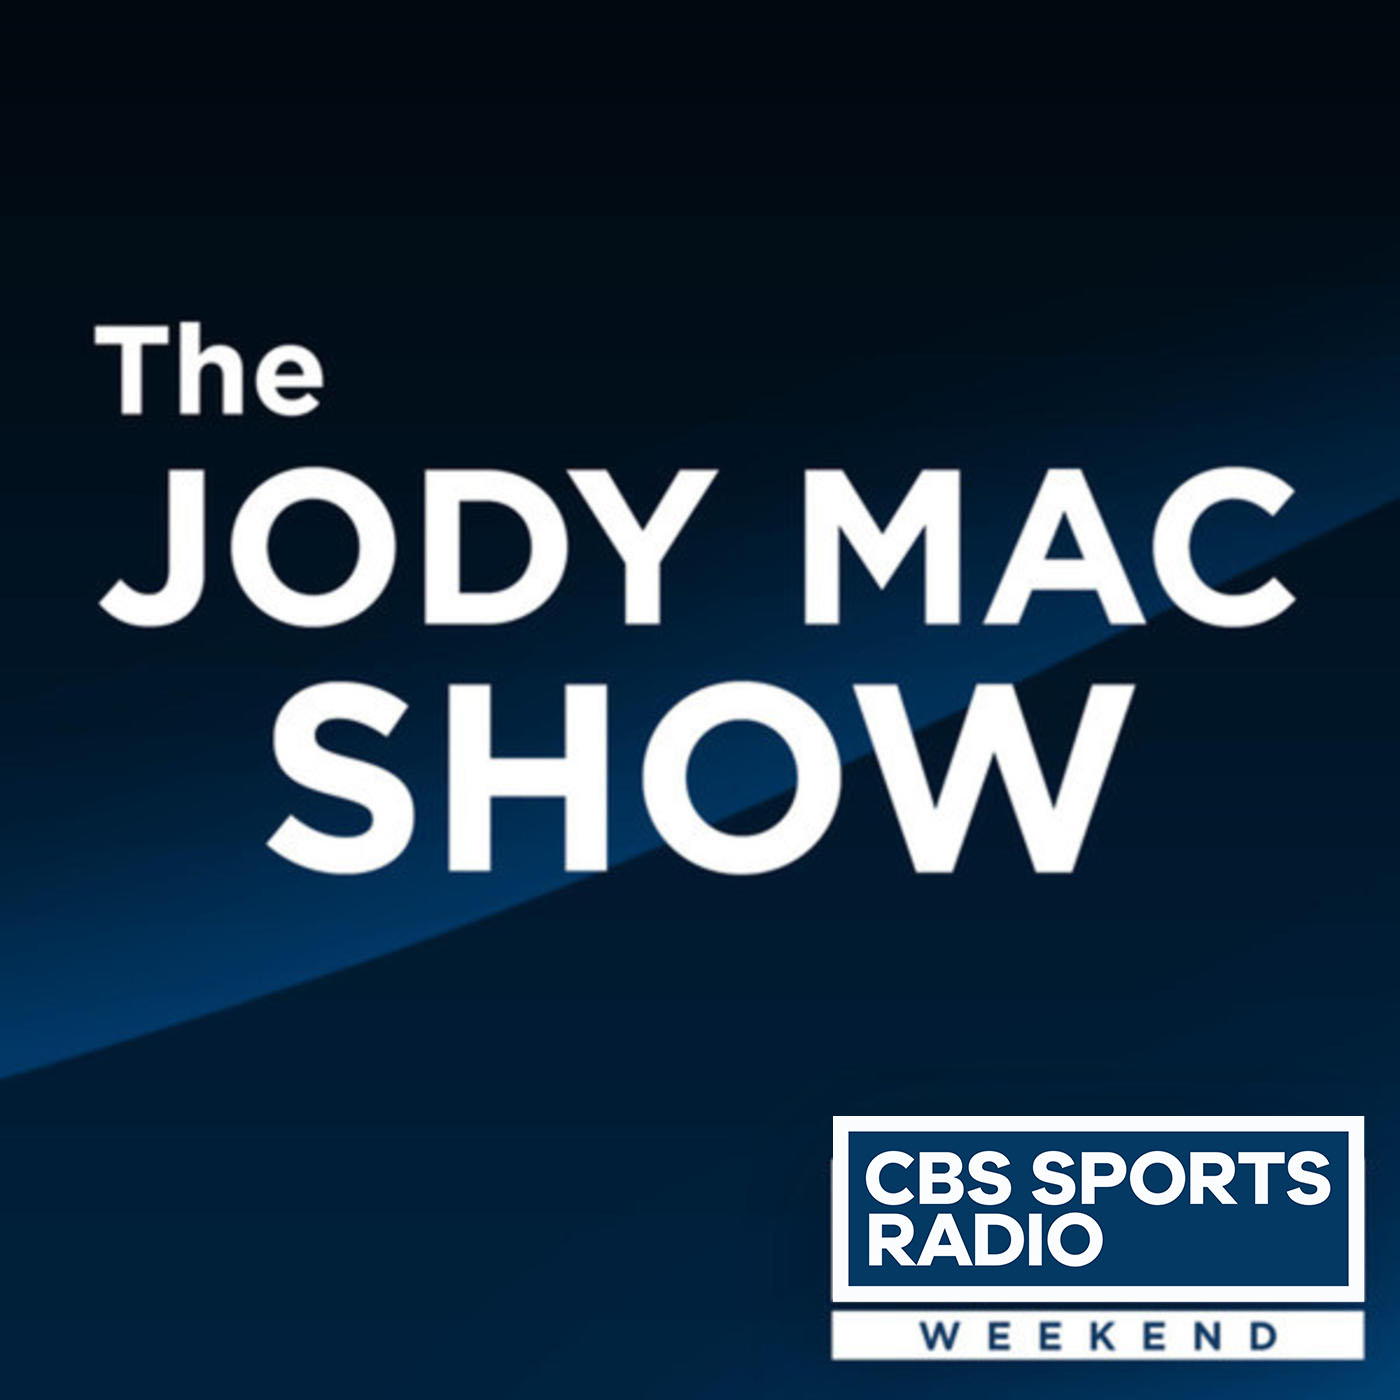 The Jody Mac Show